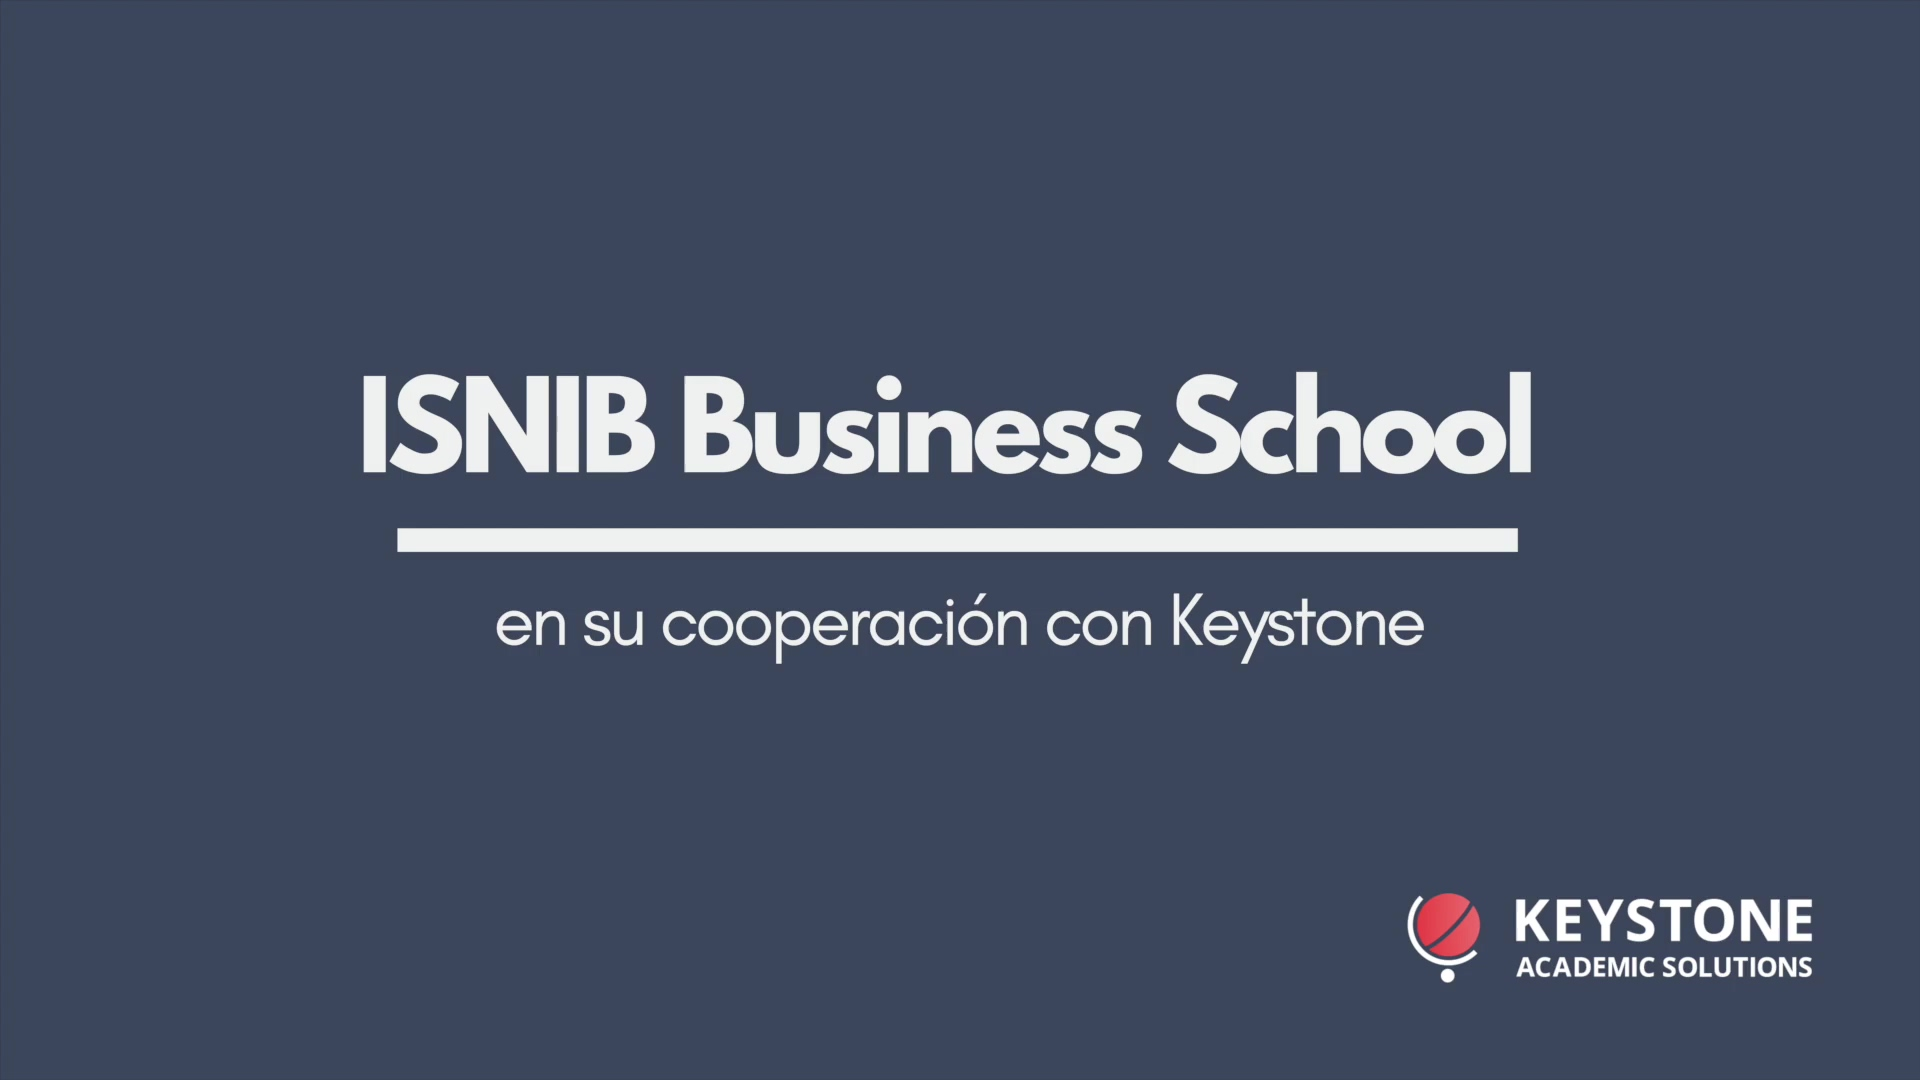 Keystone Video Testimonial - ISNIB Business School